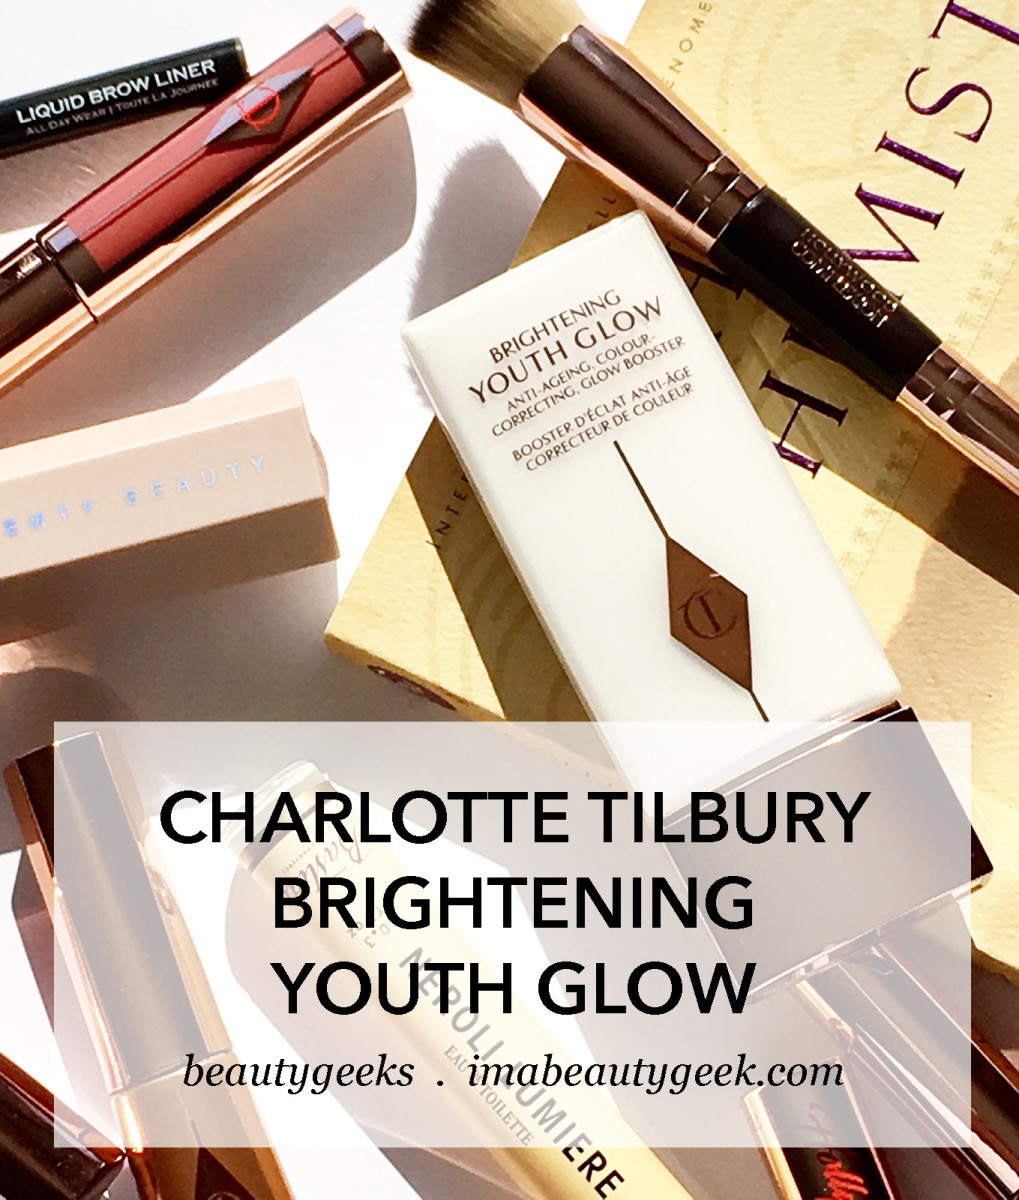 Charlotte Tilbury Brightening Youth Glow review-BEAUTYGEEKS